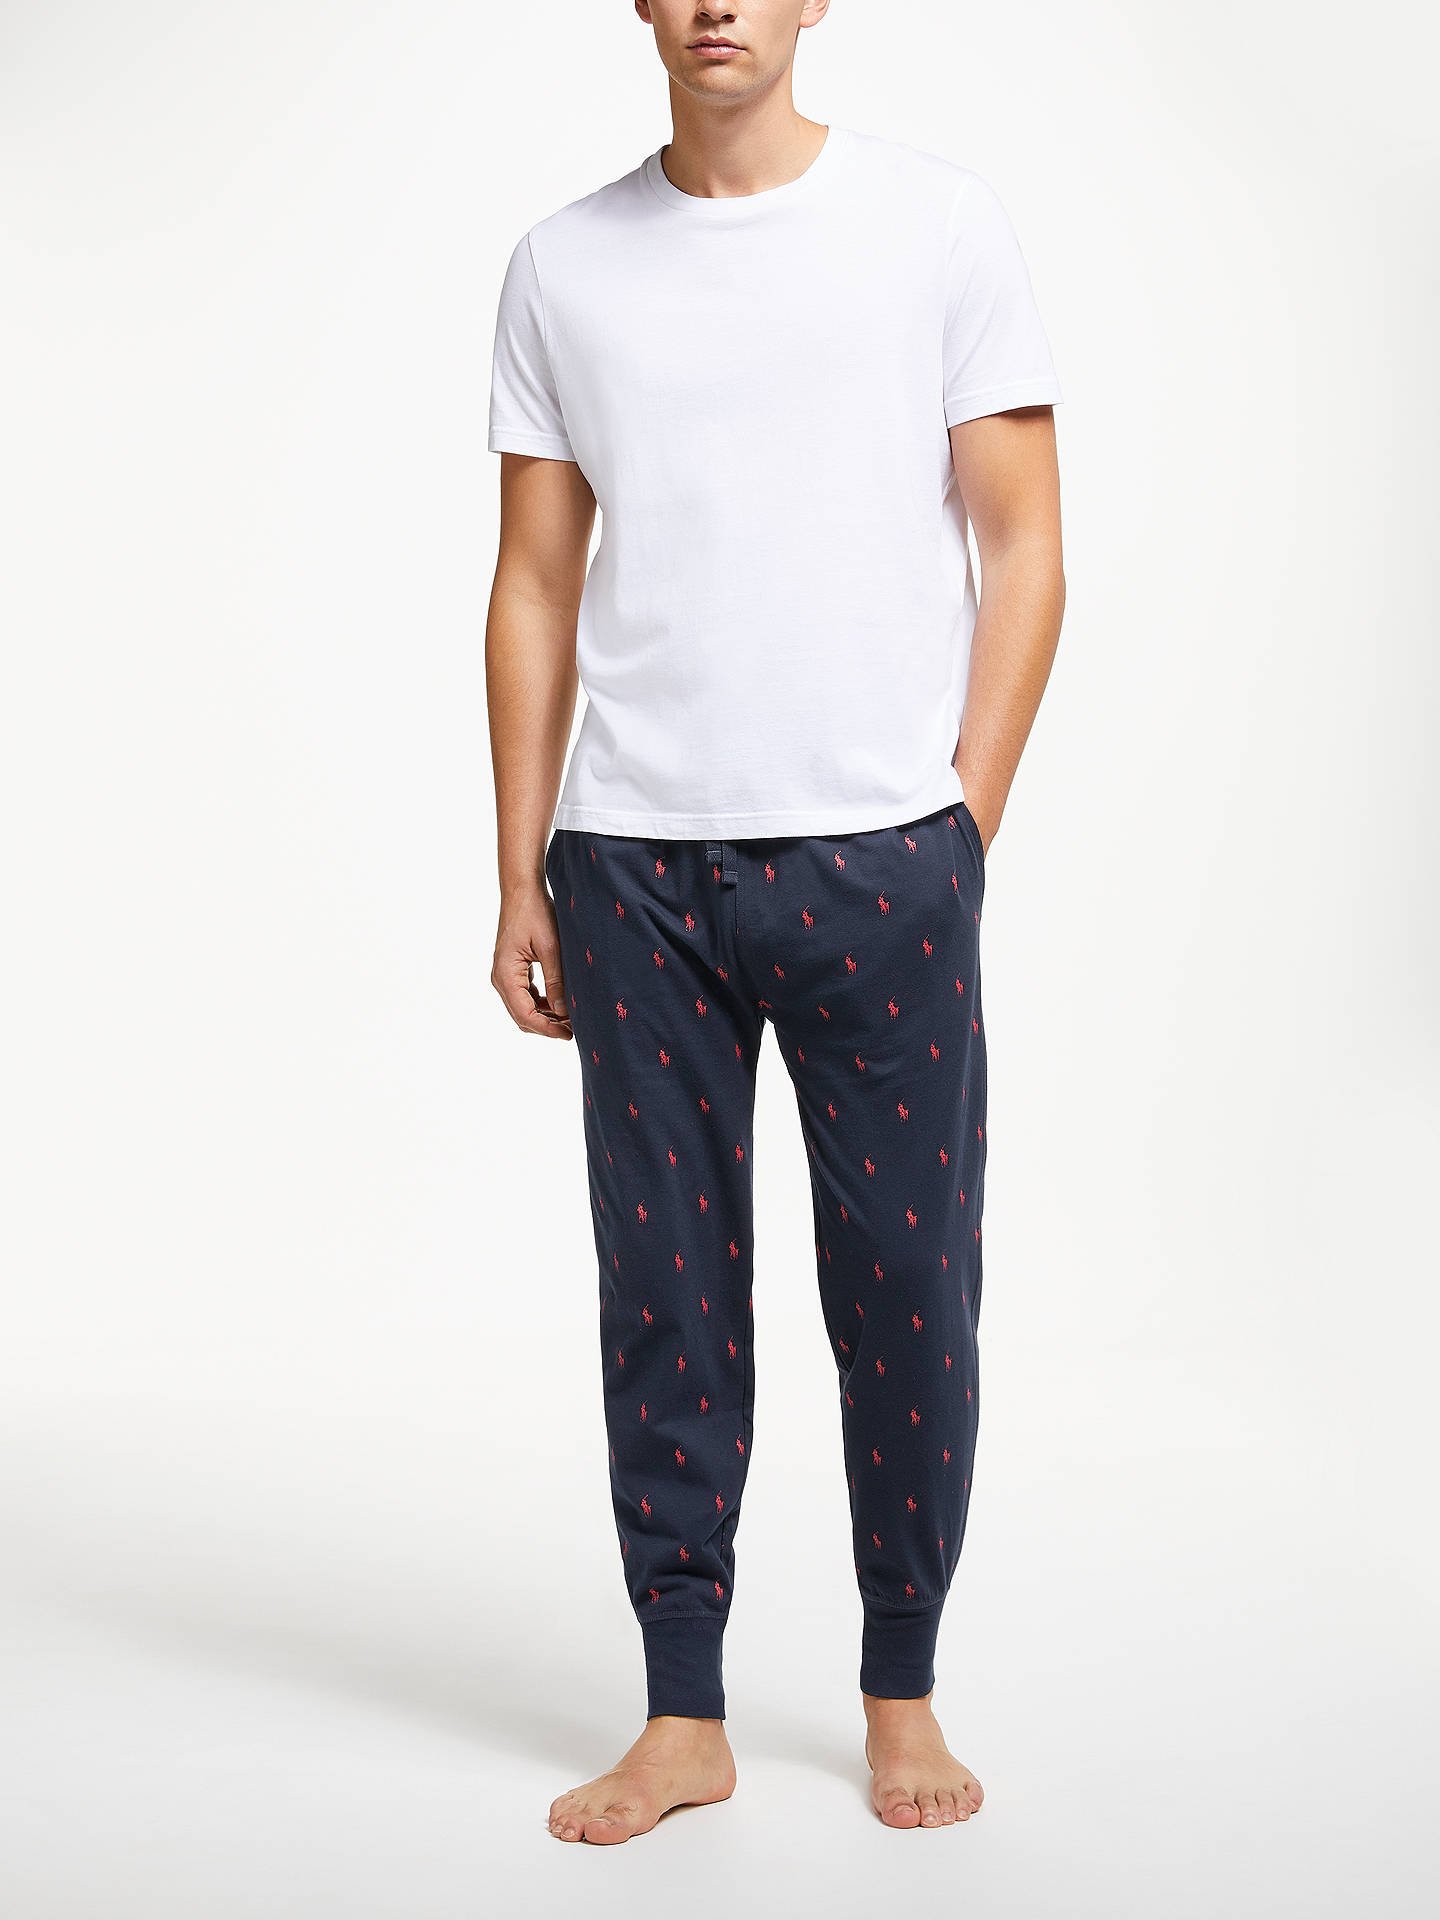 Buy Polo Ralph Lauren All Over Pony Lounge Pants, Navy, L Online at johnlewis.com